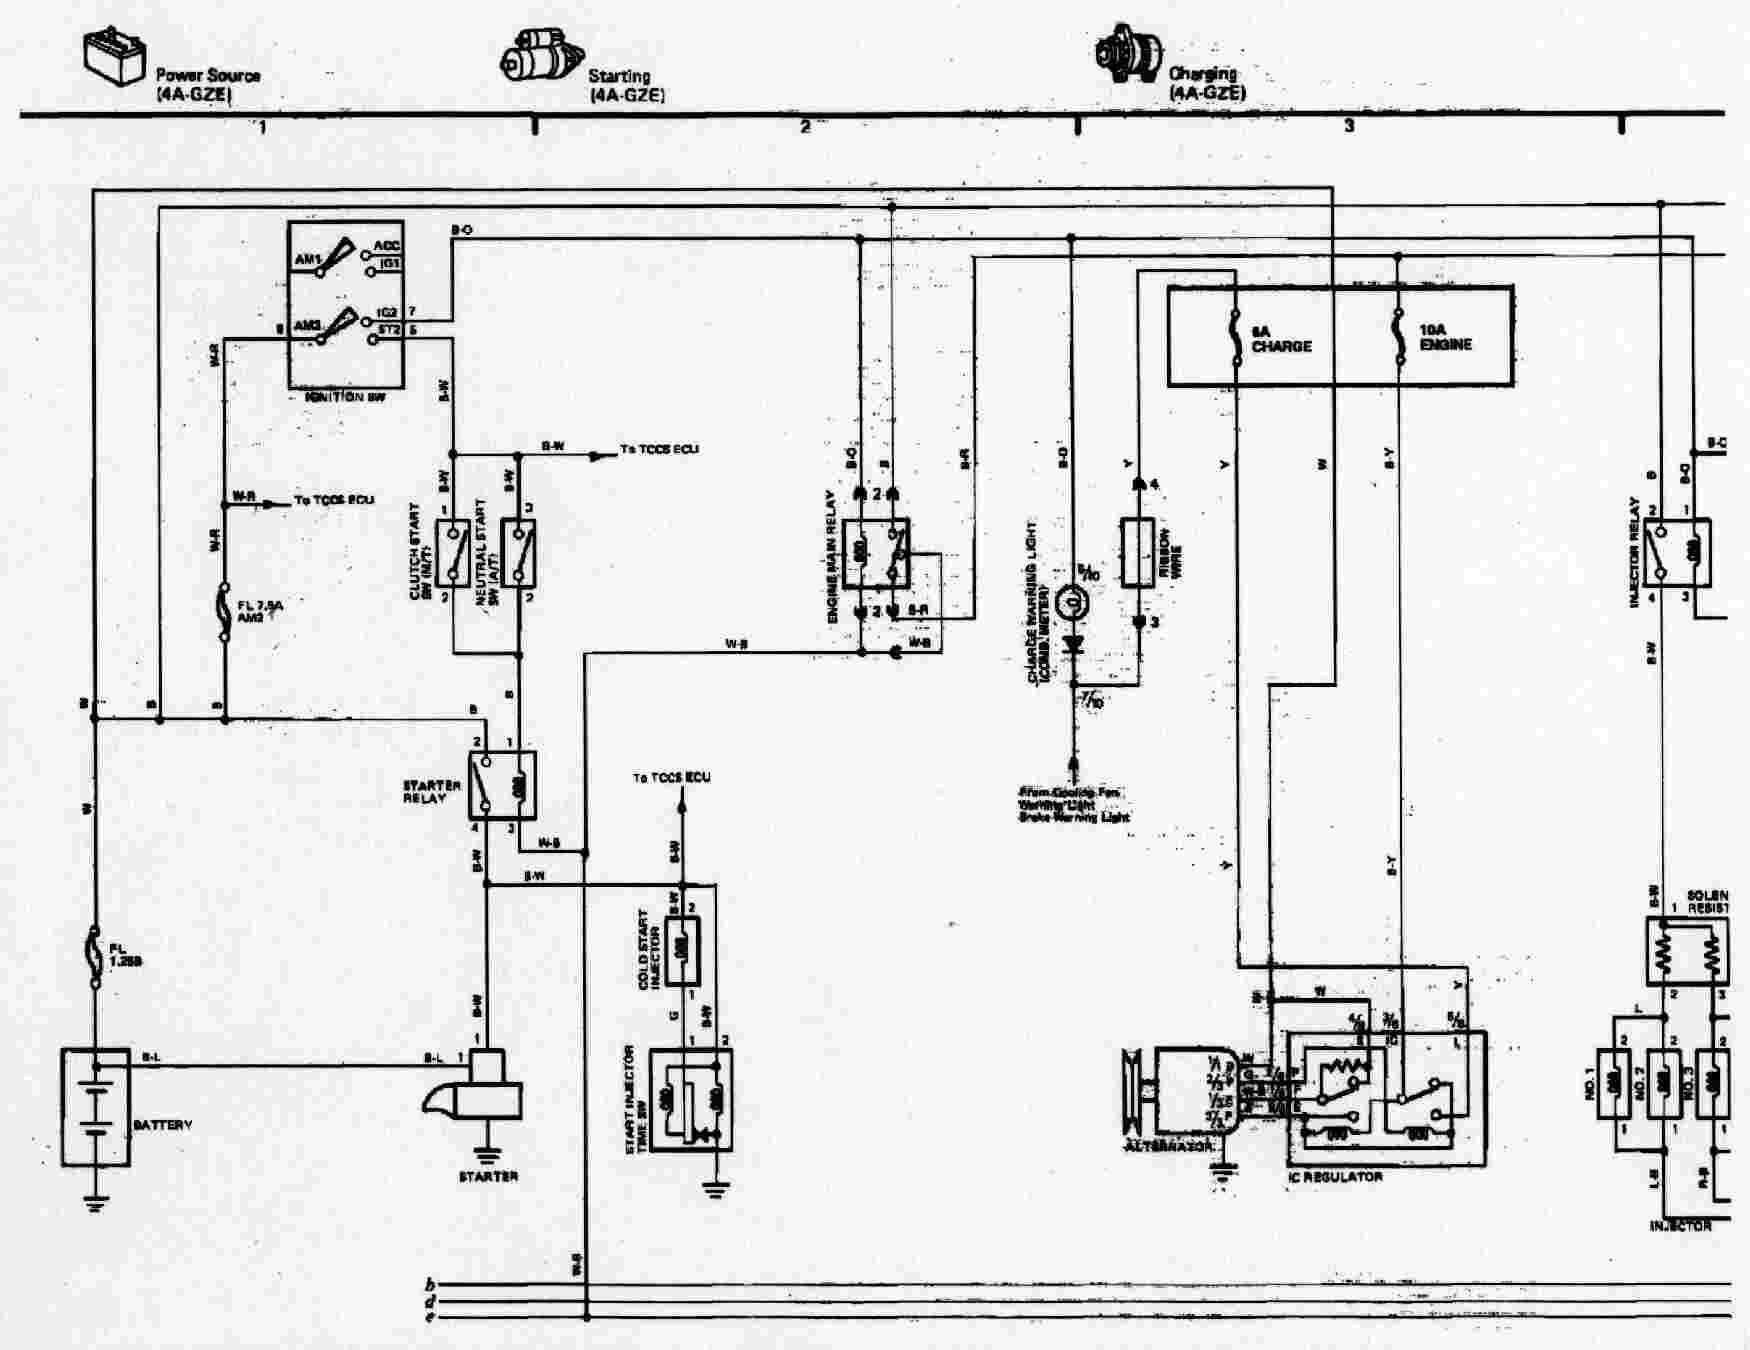 medium resolution of mk1 mr2 fuse diagram wiring diagram infomr2 wiring diagram 8